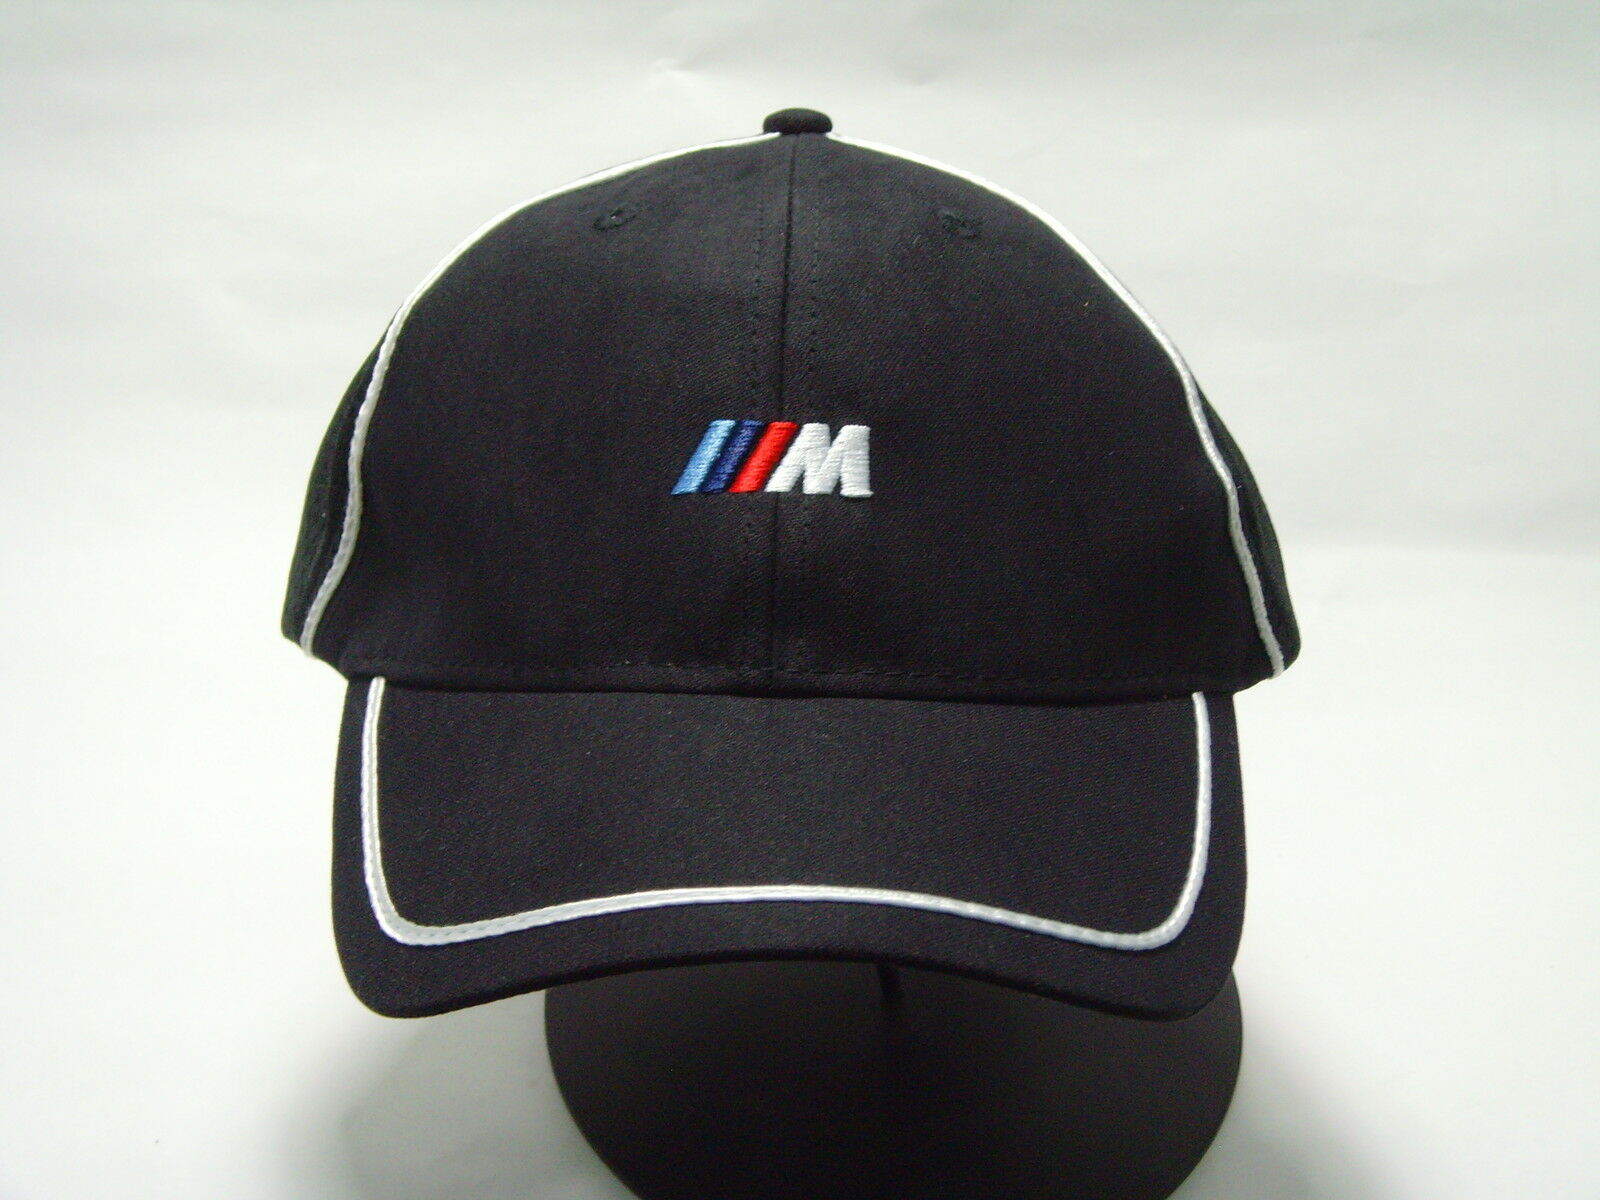 BMW /// M SPORT Men's Baseball HAT CAP BLACK WITH WHITE STRIPE 80162208702 M3 M5